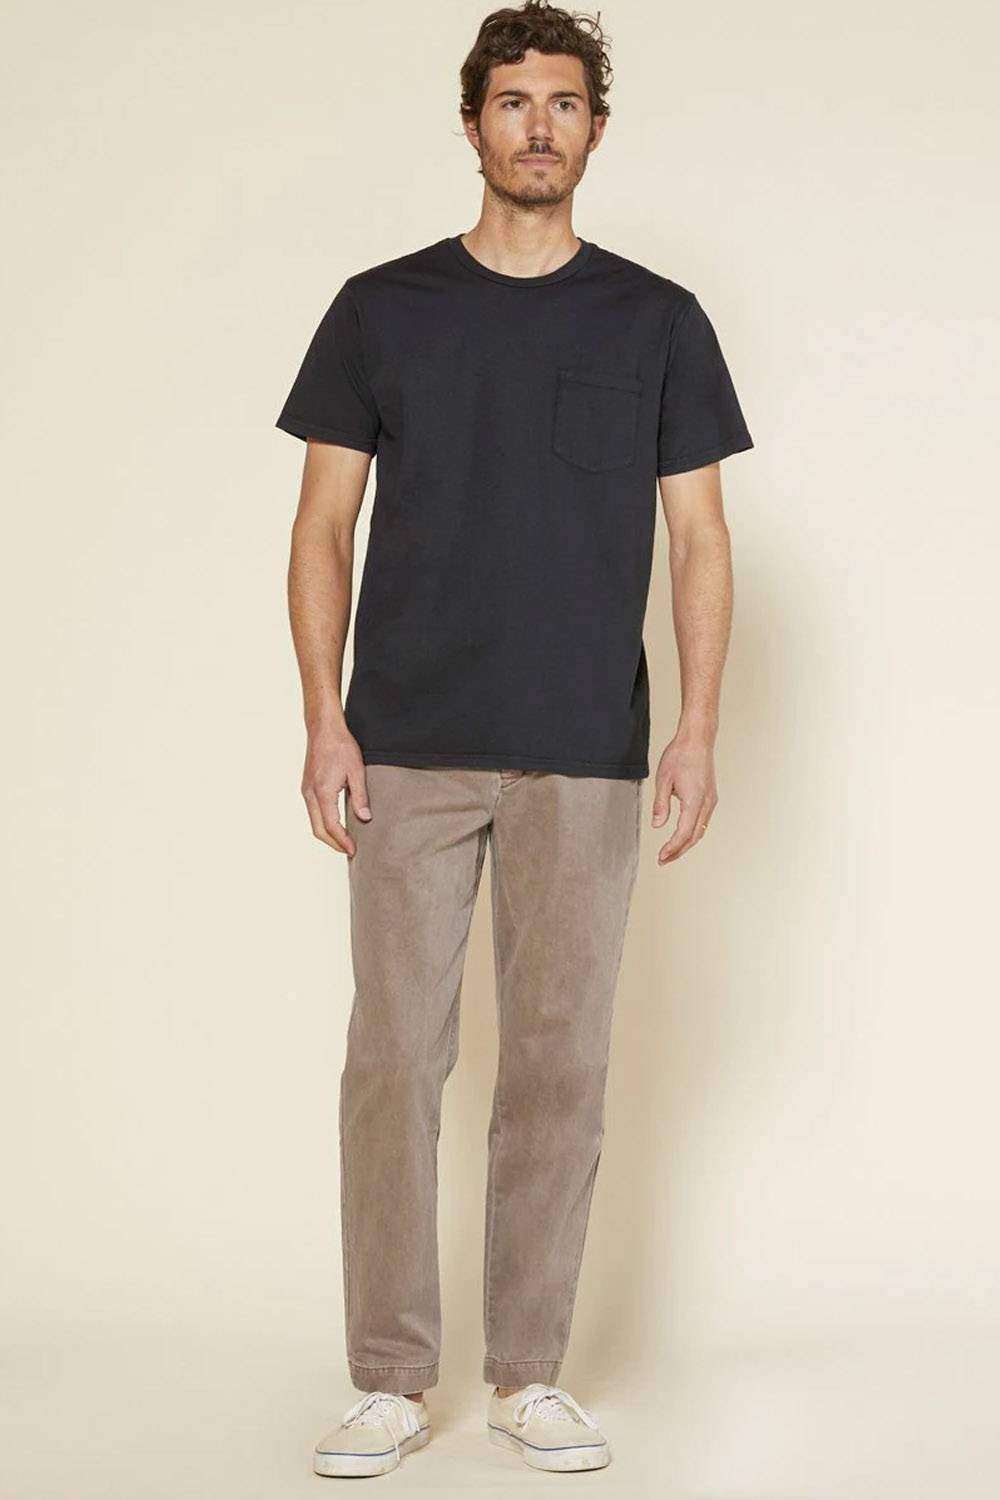 outerknown usa made chino pants